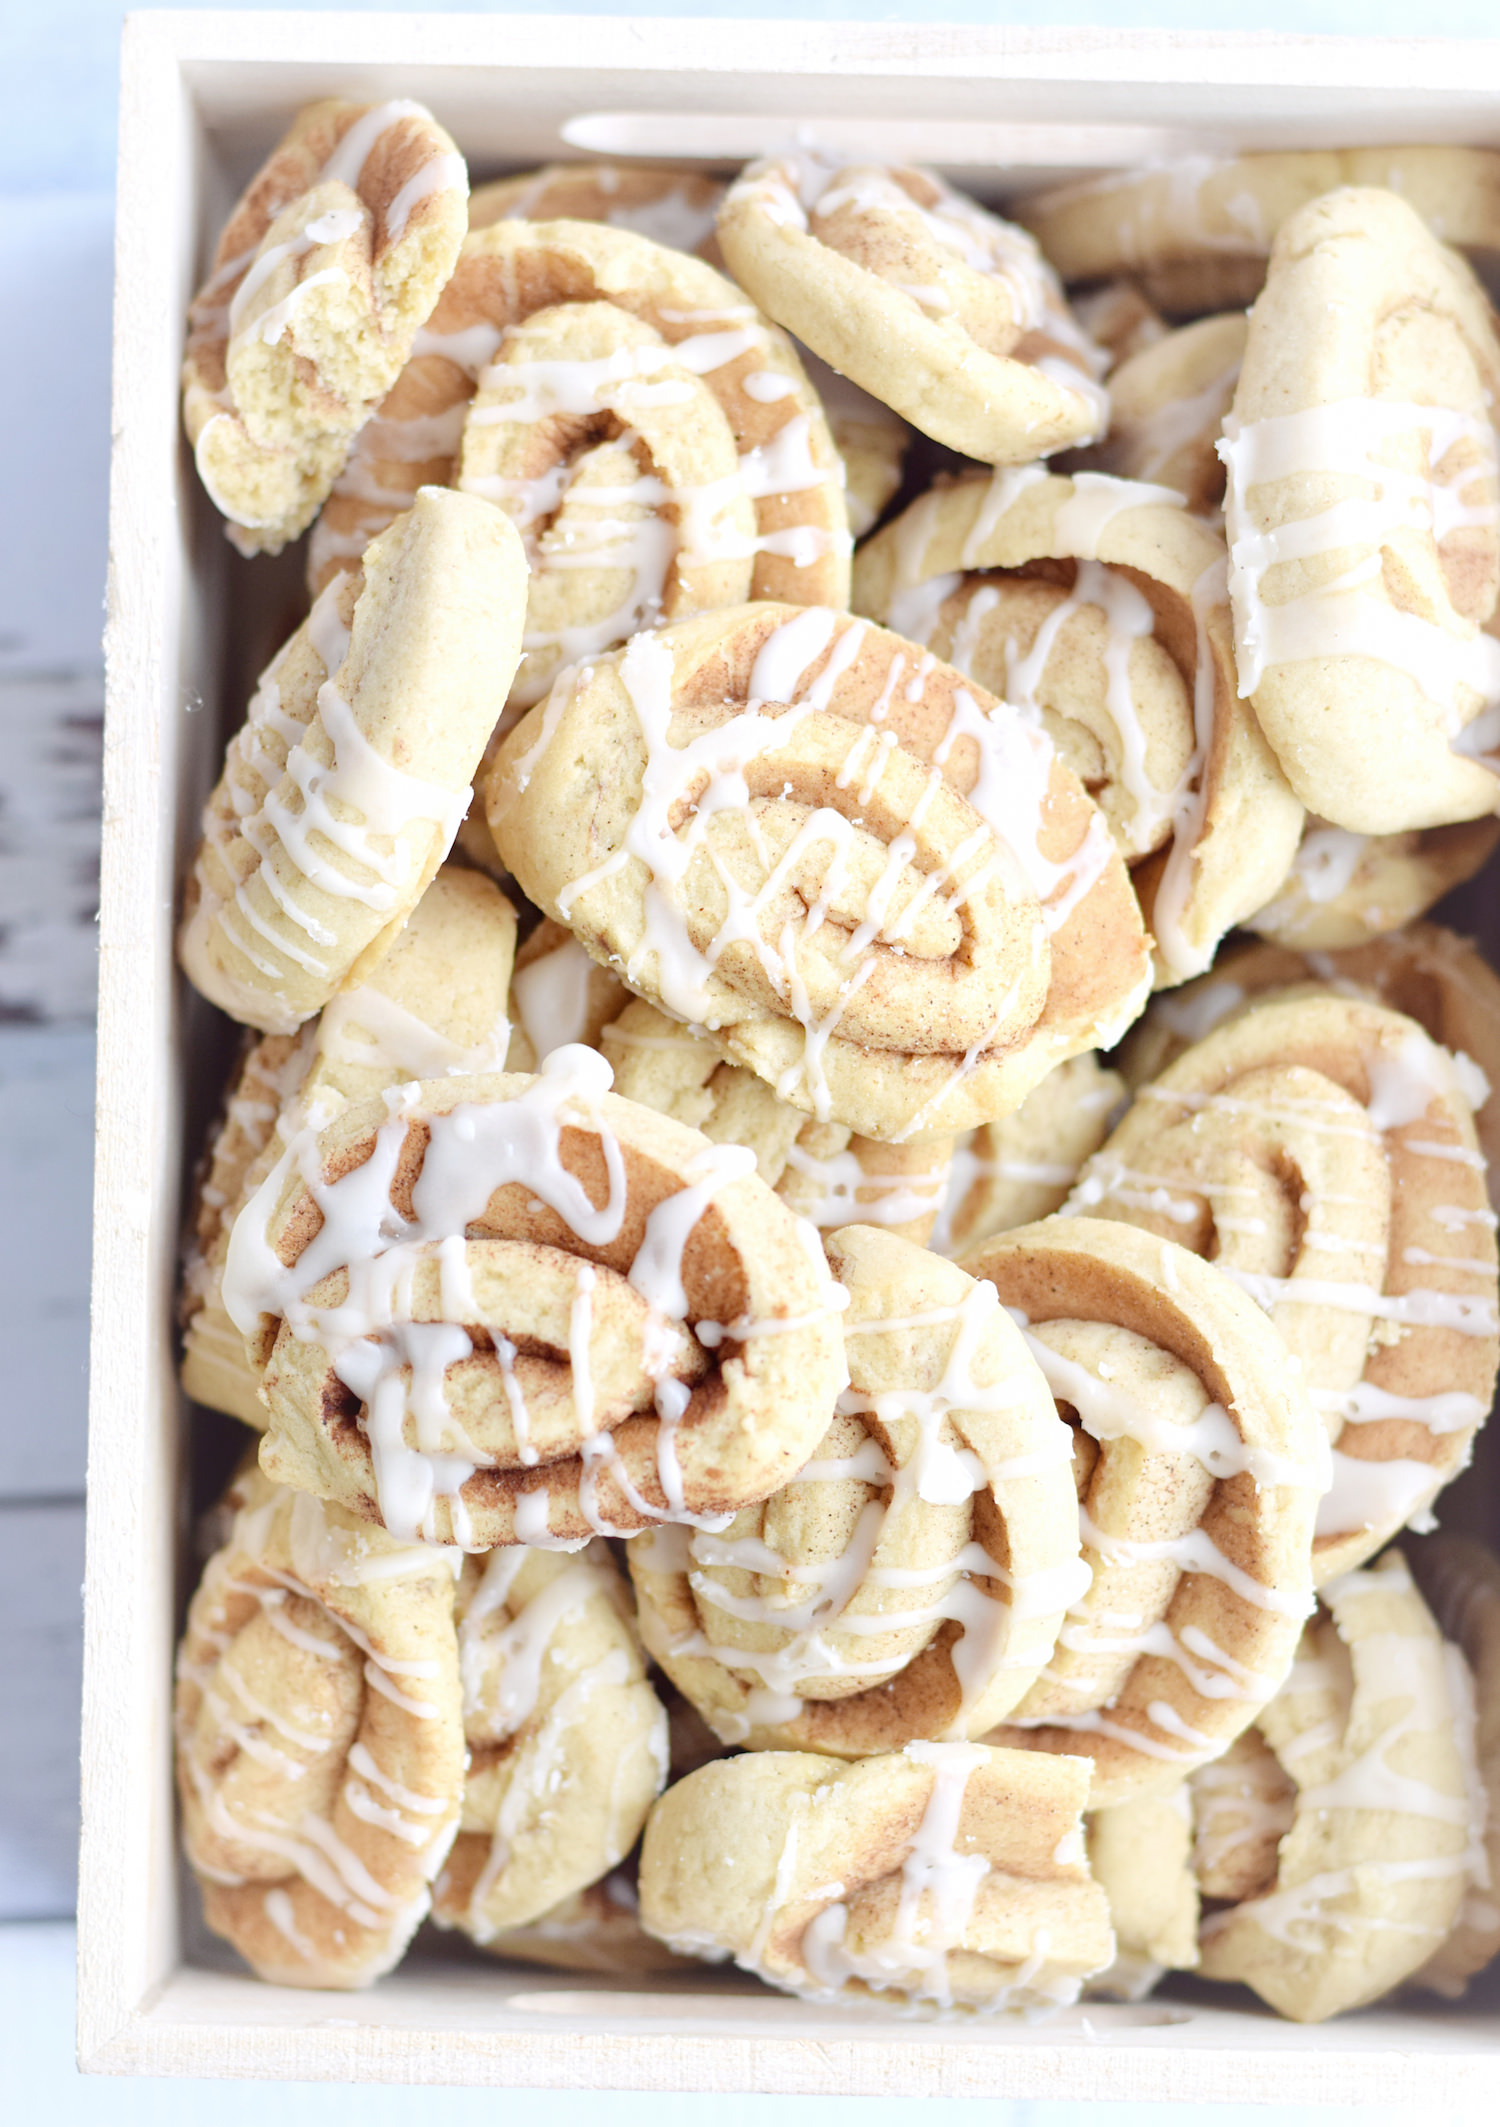 Cinnamon Roll Cookies - everything you love about a cinnamon roll in the form of an easy, quick, soft, buttery, cinnamon roll cookie! | trufflesandtrends.com